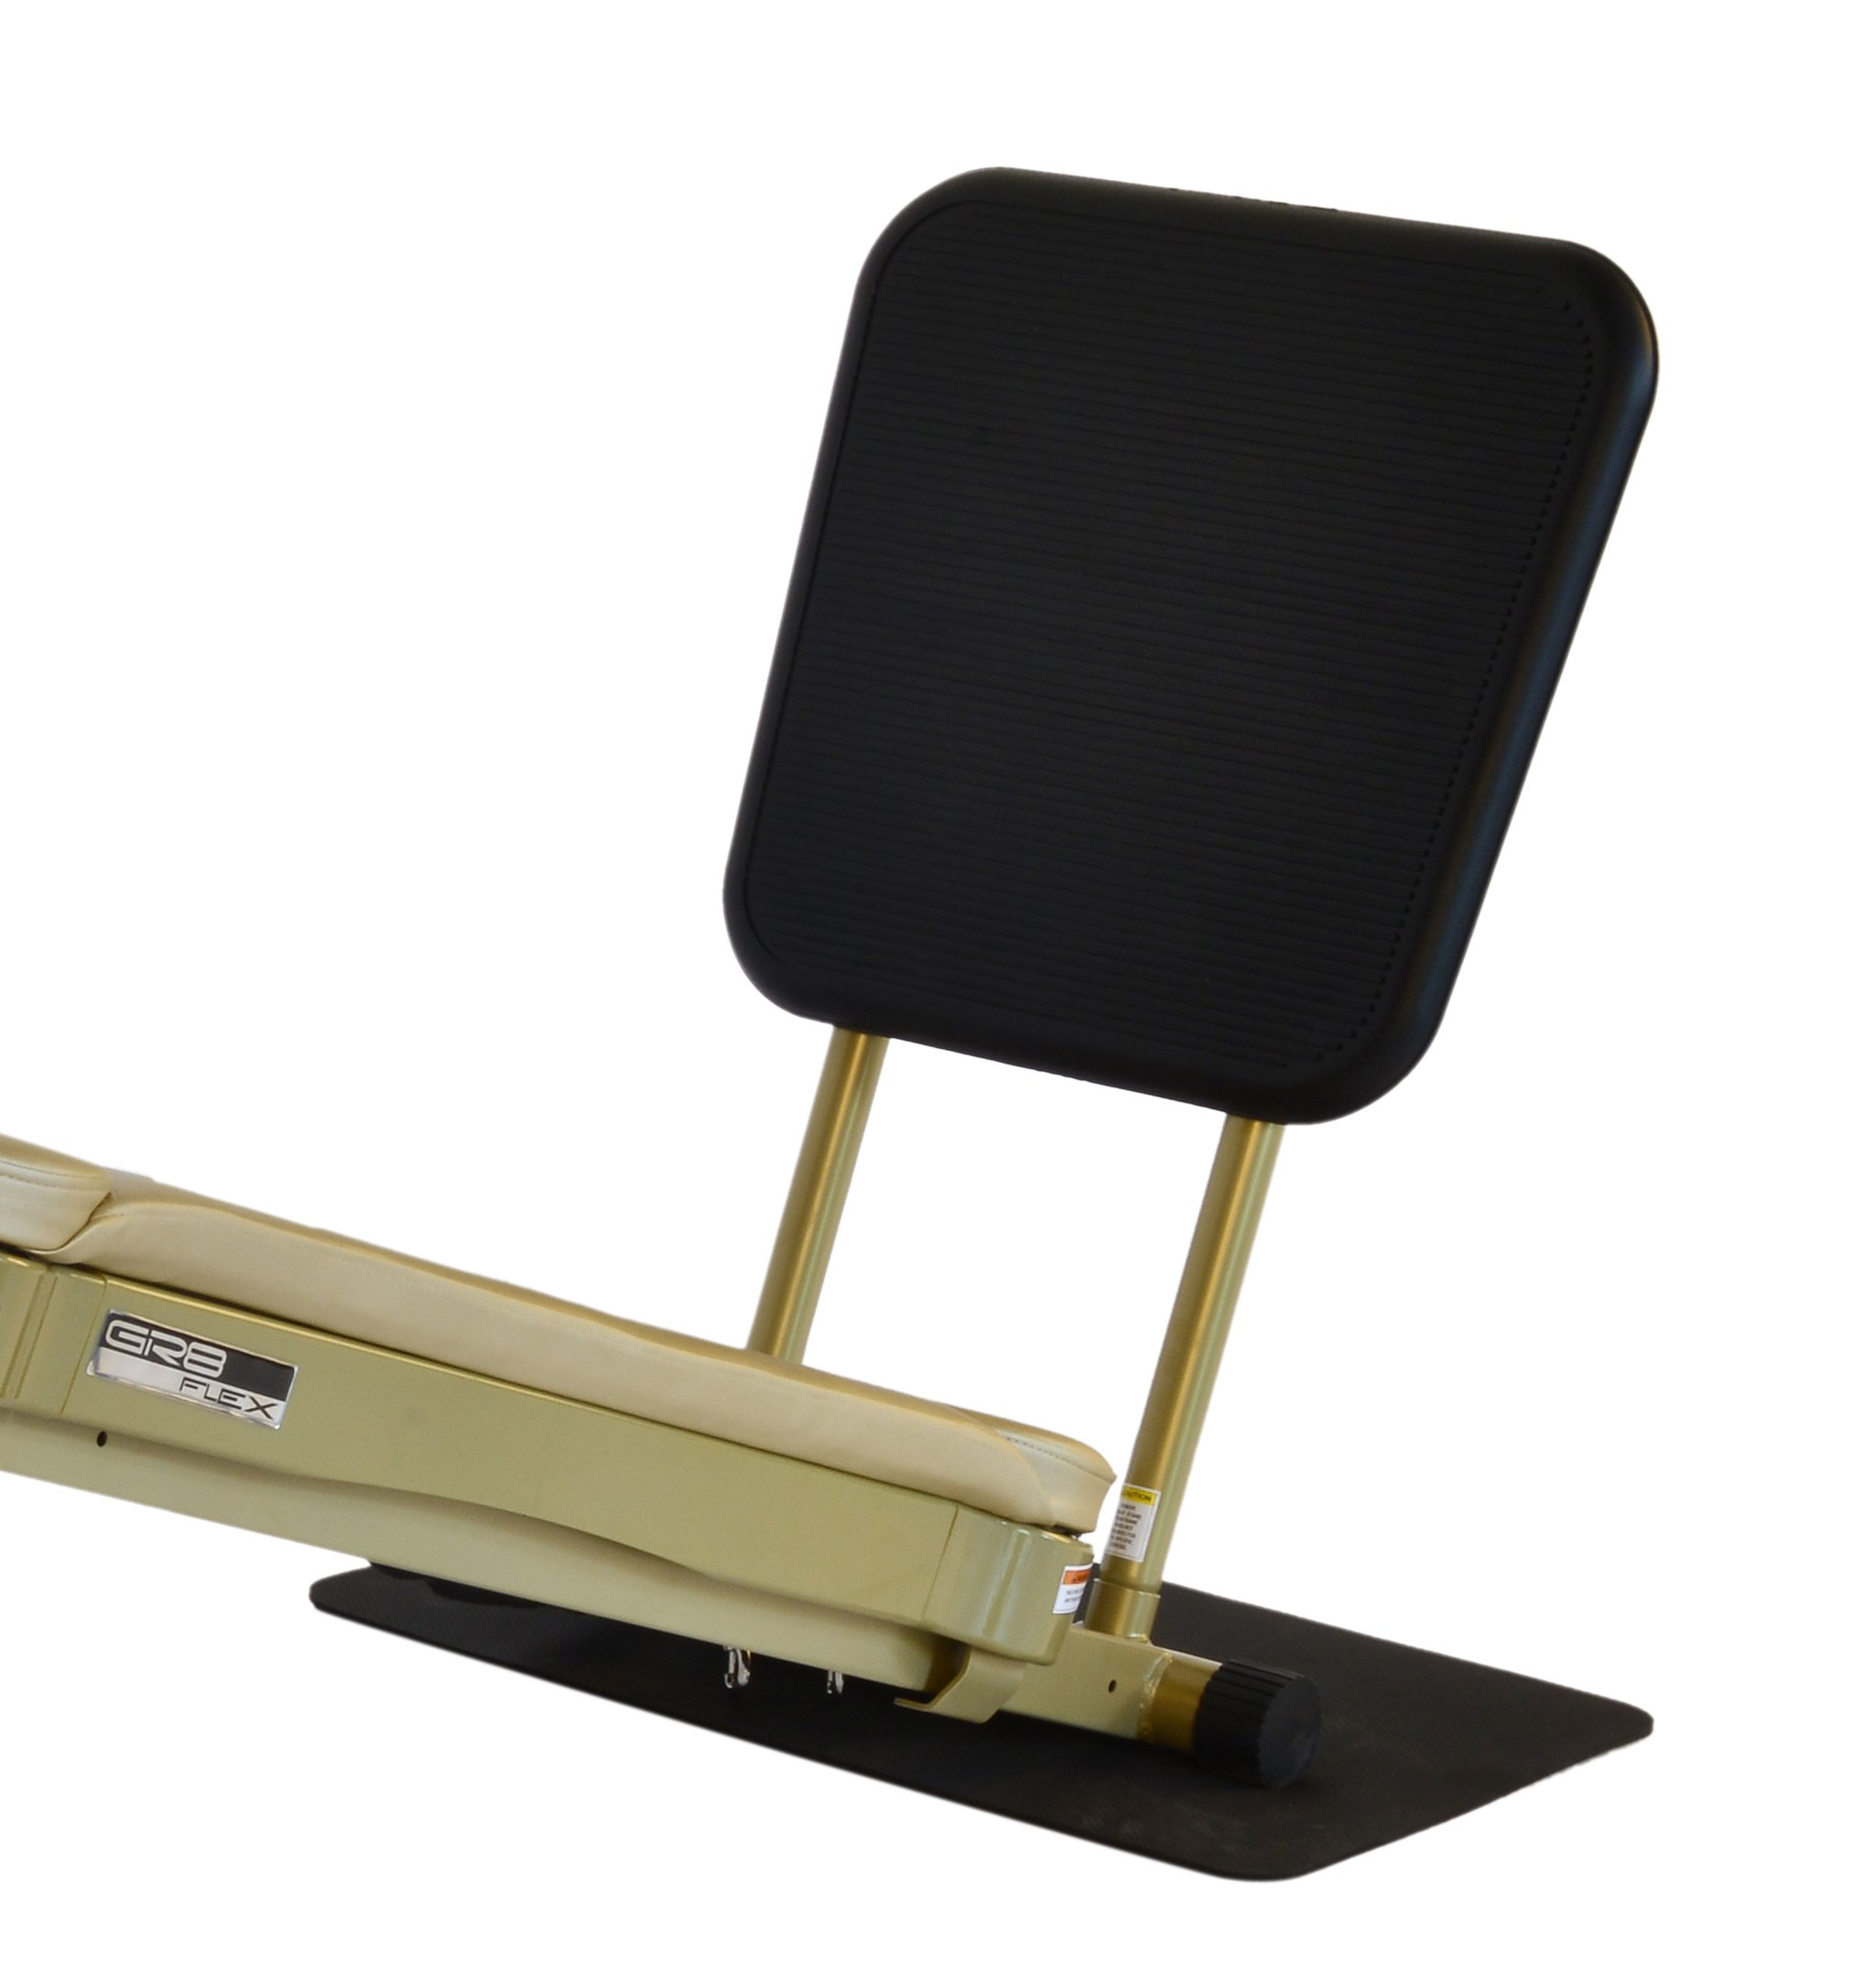 Squat Stand - Extra Large & Extended Long Design For Total Gym by GR8FLEX